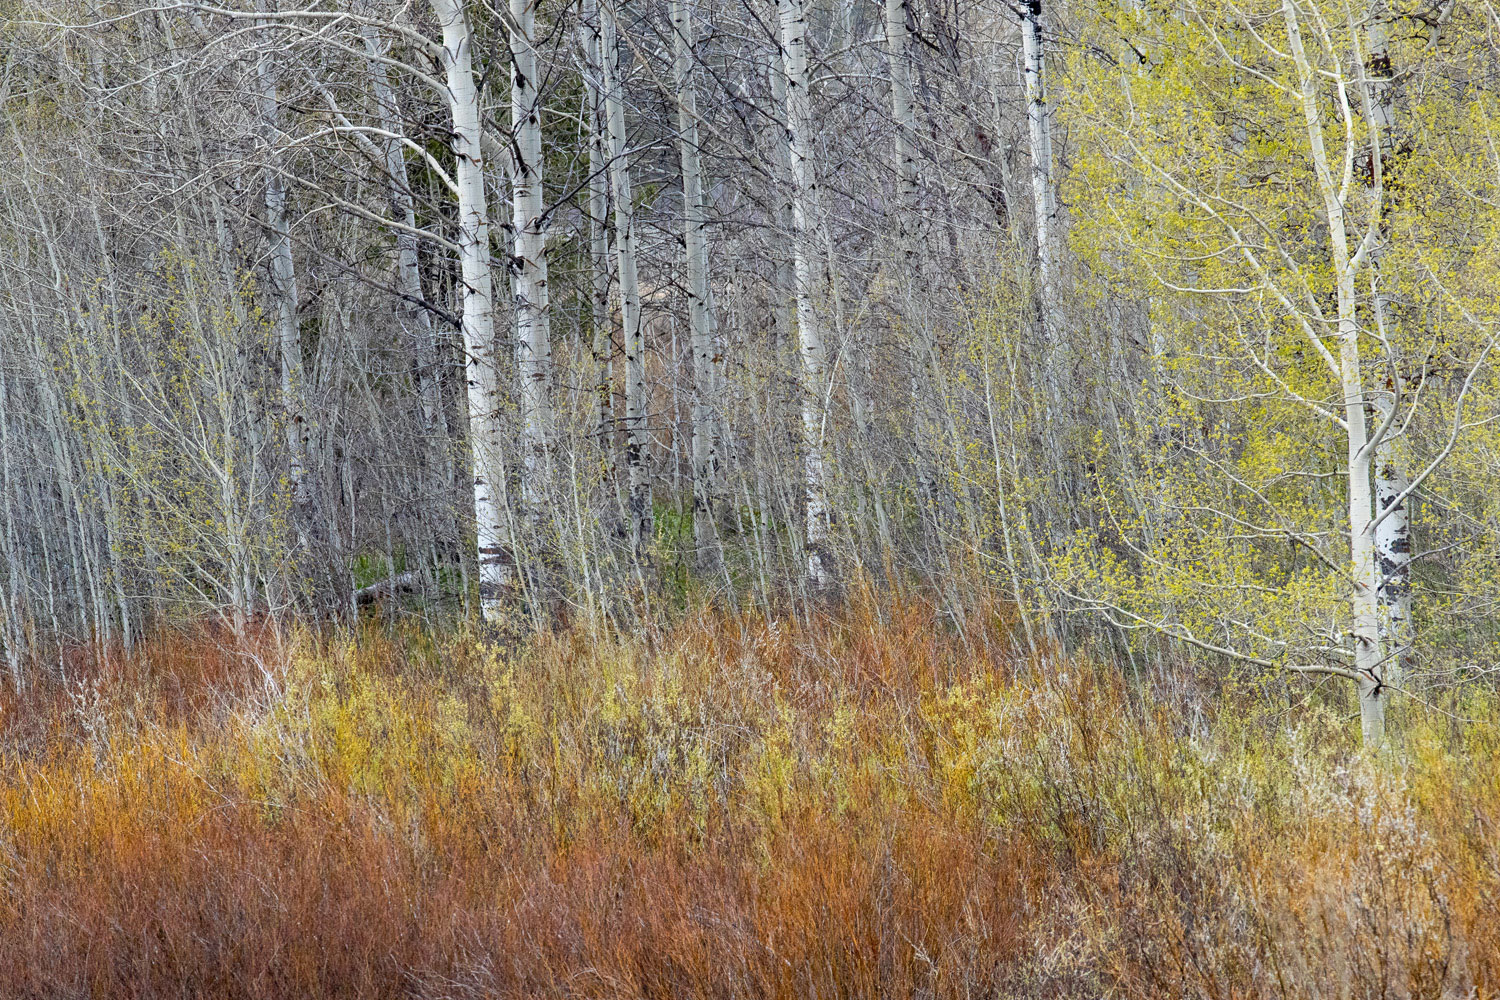 Red willow shoots emerge in the marsh shore by an aspen grove.